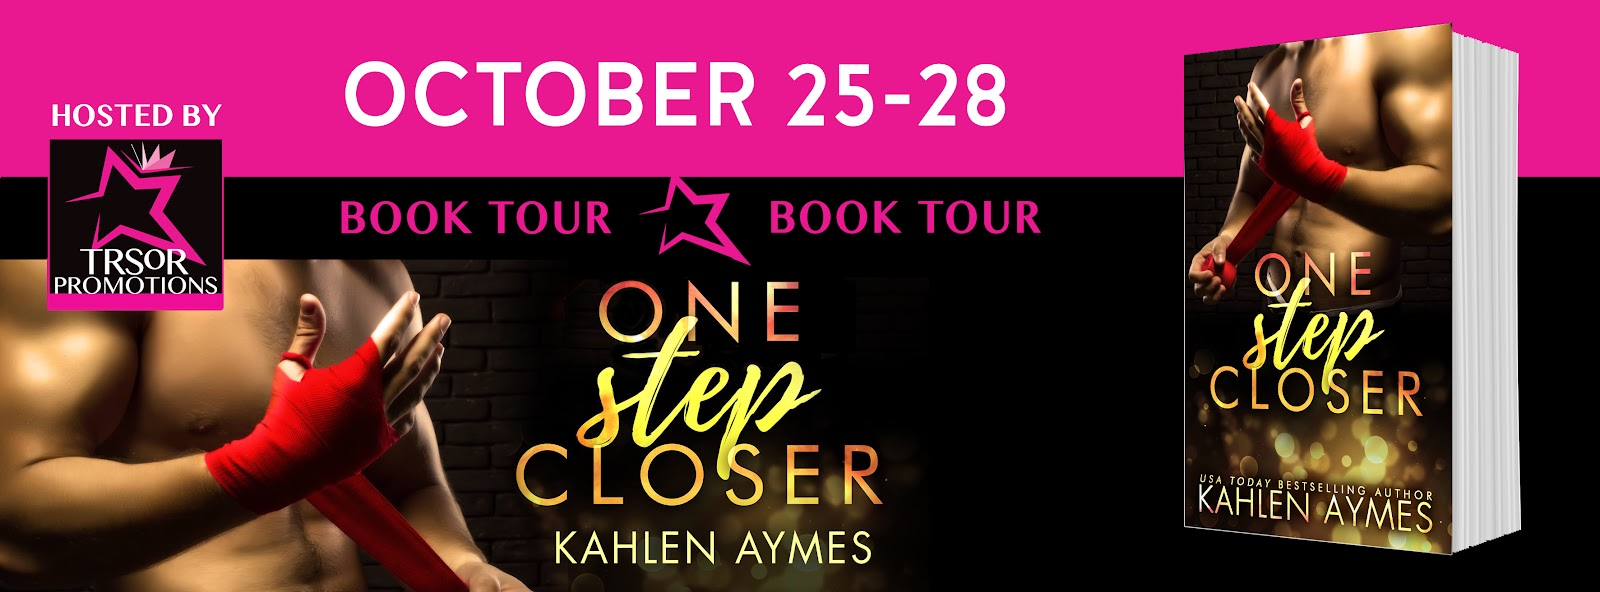 ONE_STEP_BOOK_TOUR.jpg